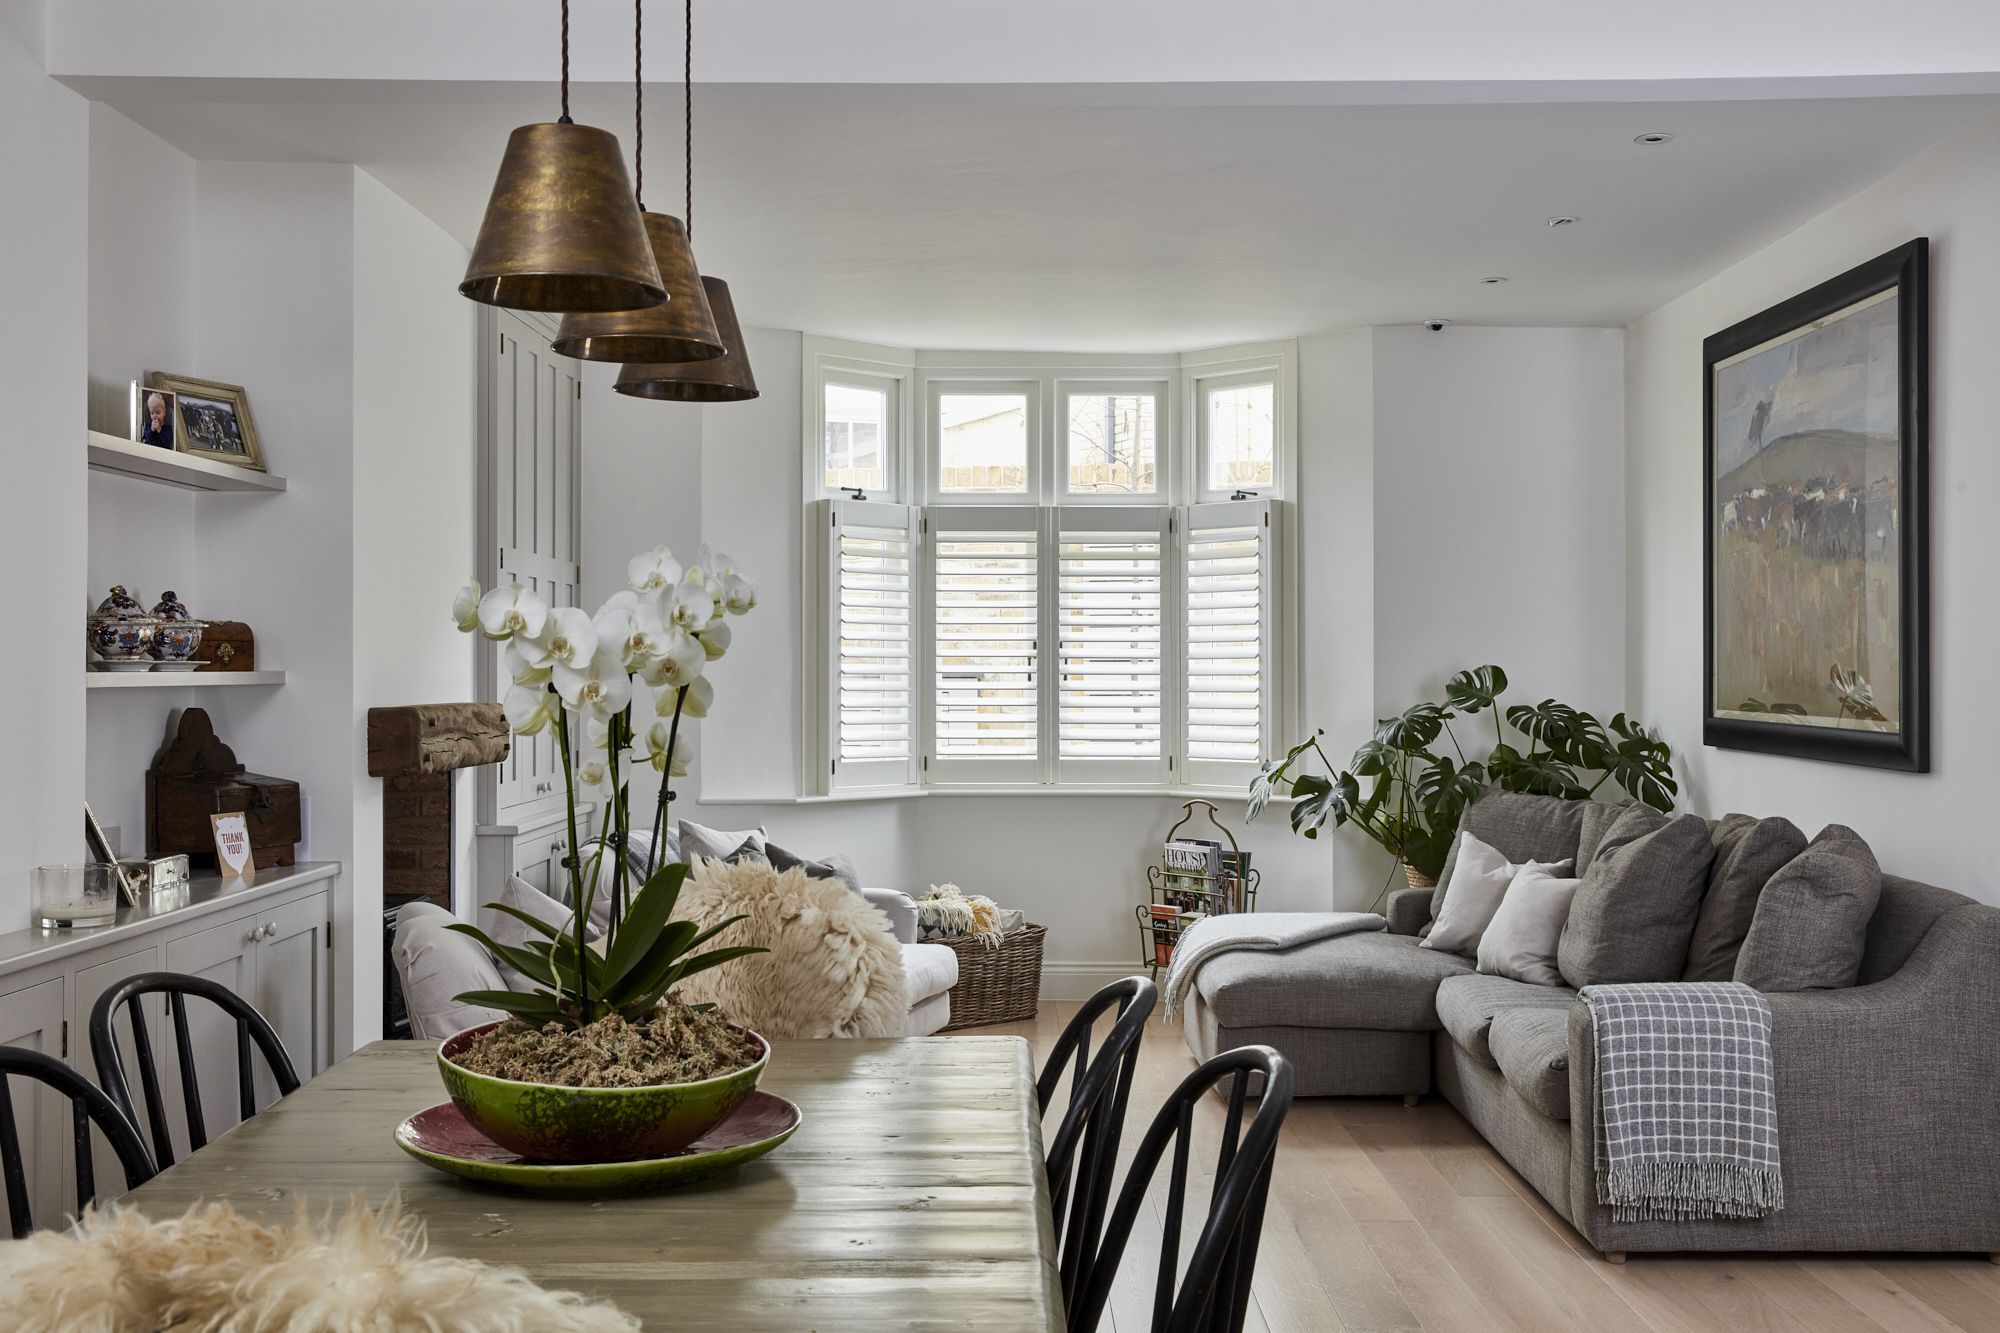 Living Room Shutters by Plantation Shutters Ltd